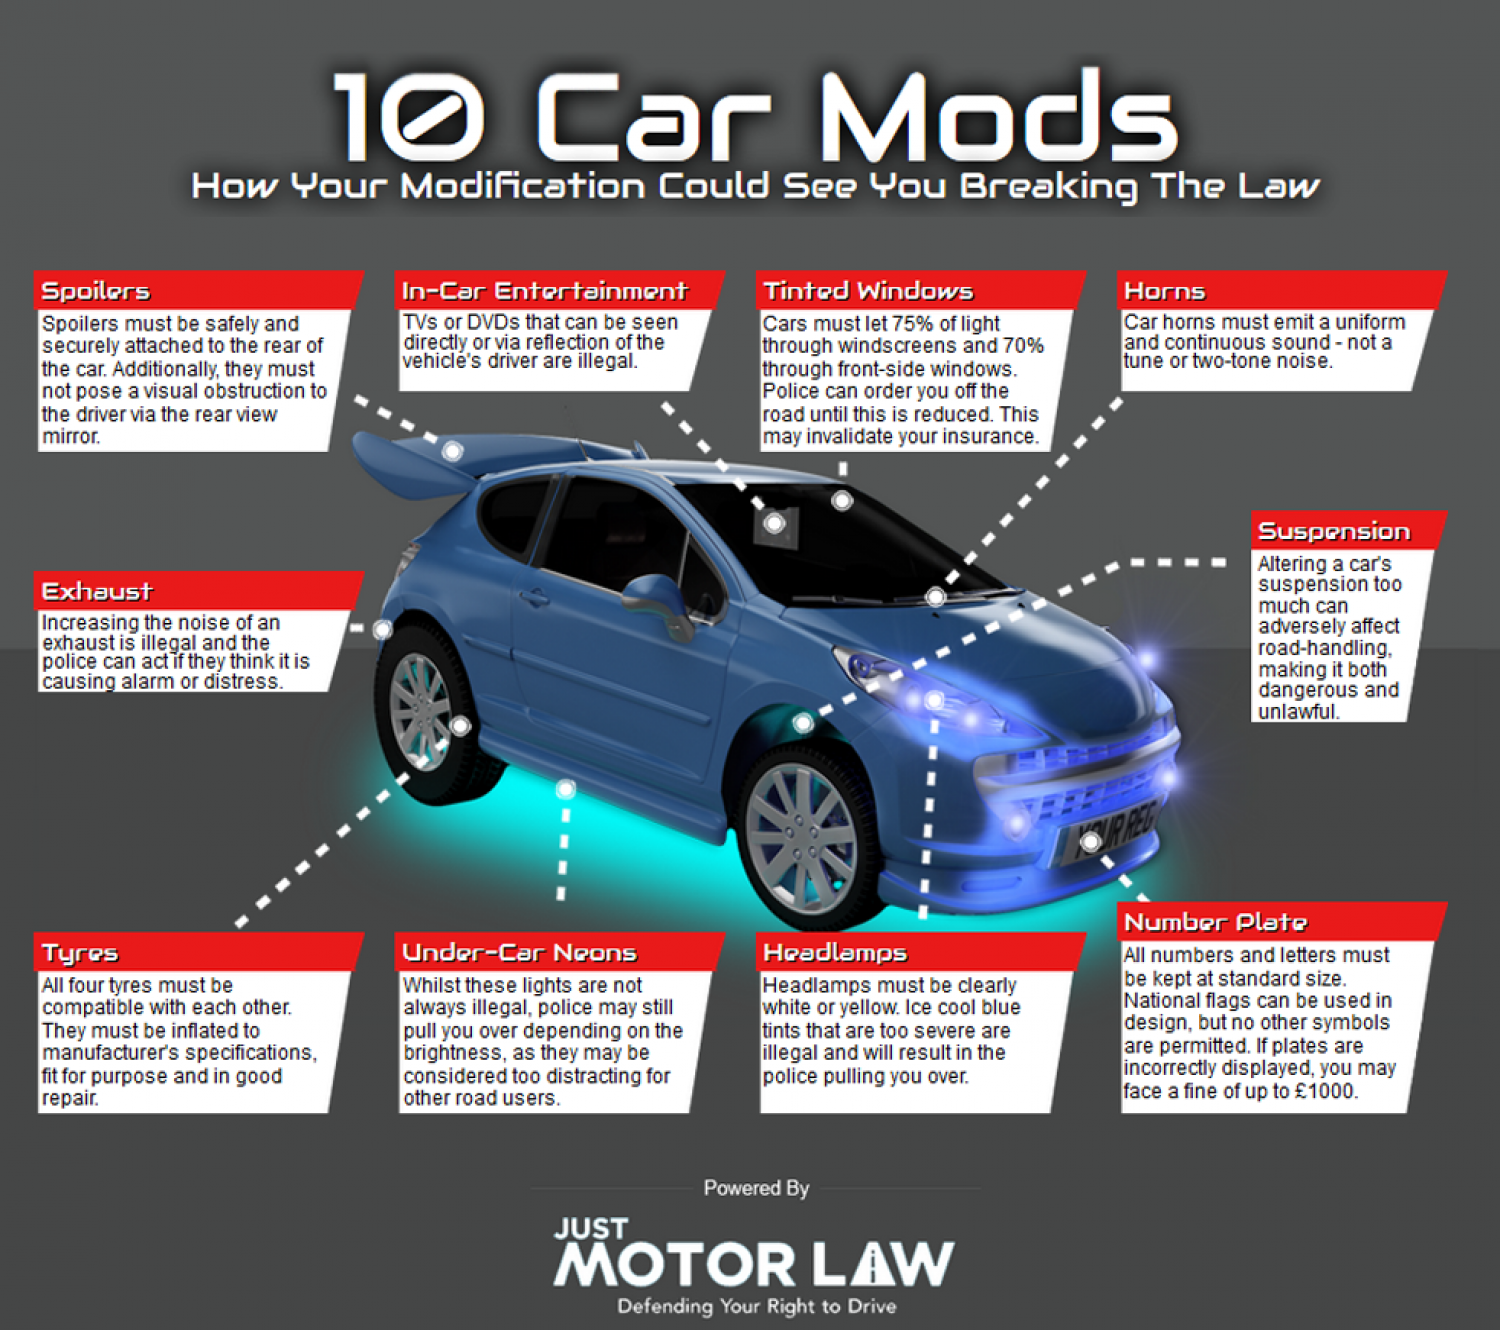 10 Car Mods: how your modification could see you breaking the law Infographic